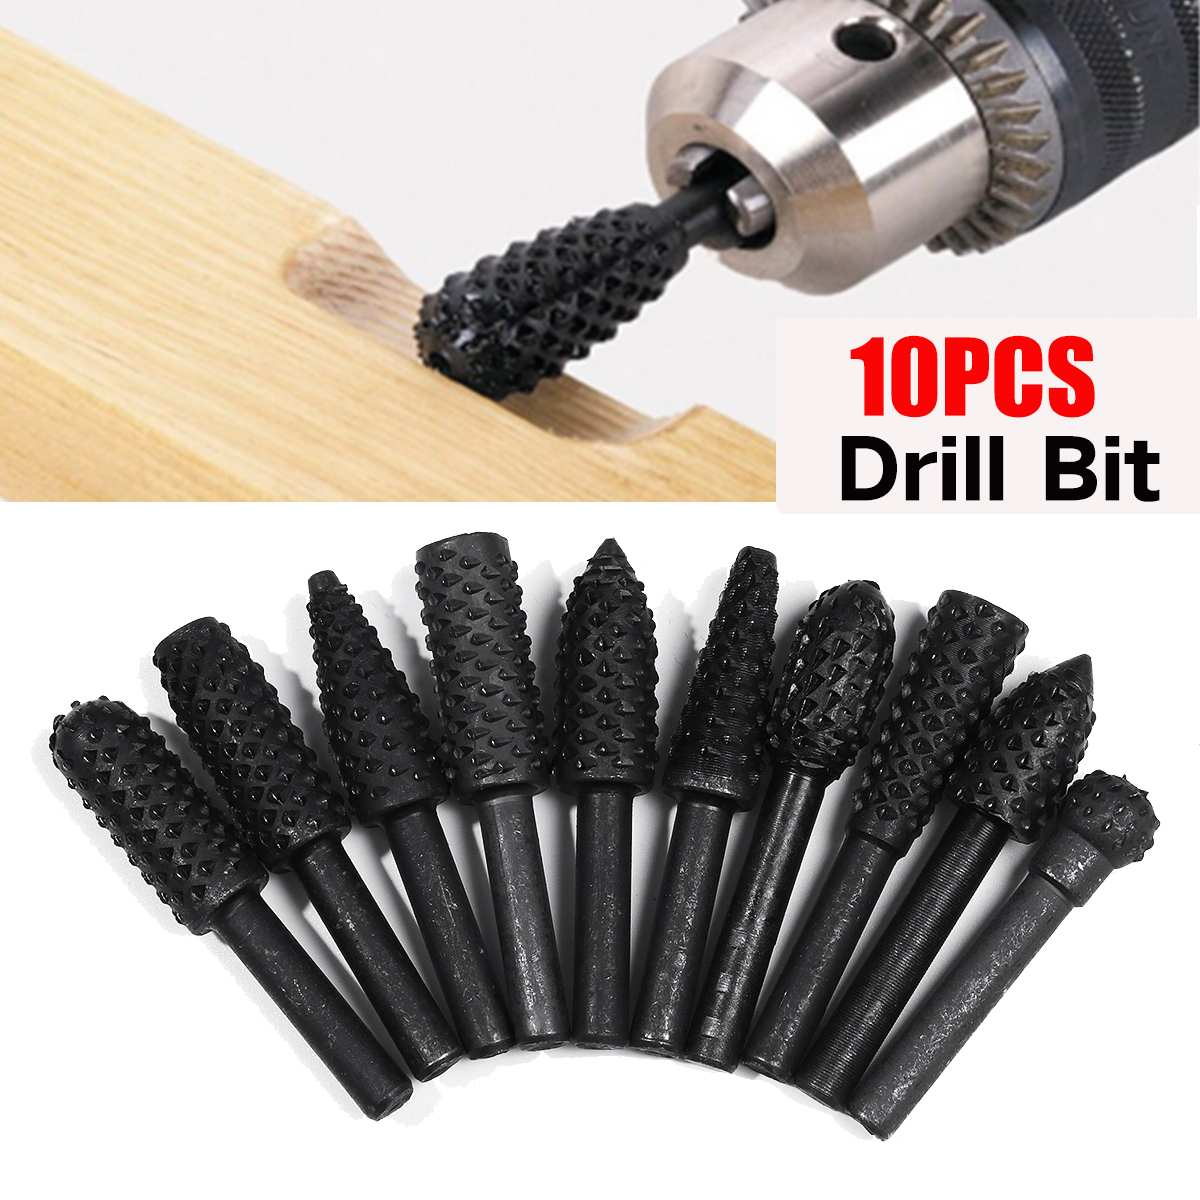 10Pcs/Set Dremel Routing Titanium Milling Wood Rotary Knife File Cutters Woodworking Carving Carved Cutter Tools Accessories